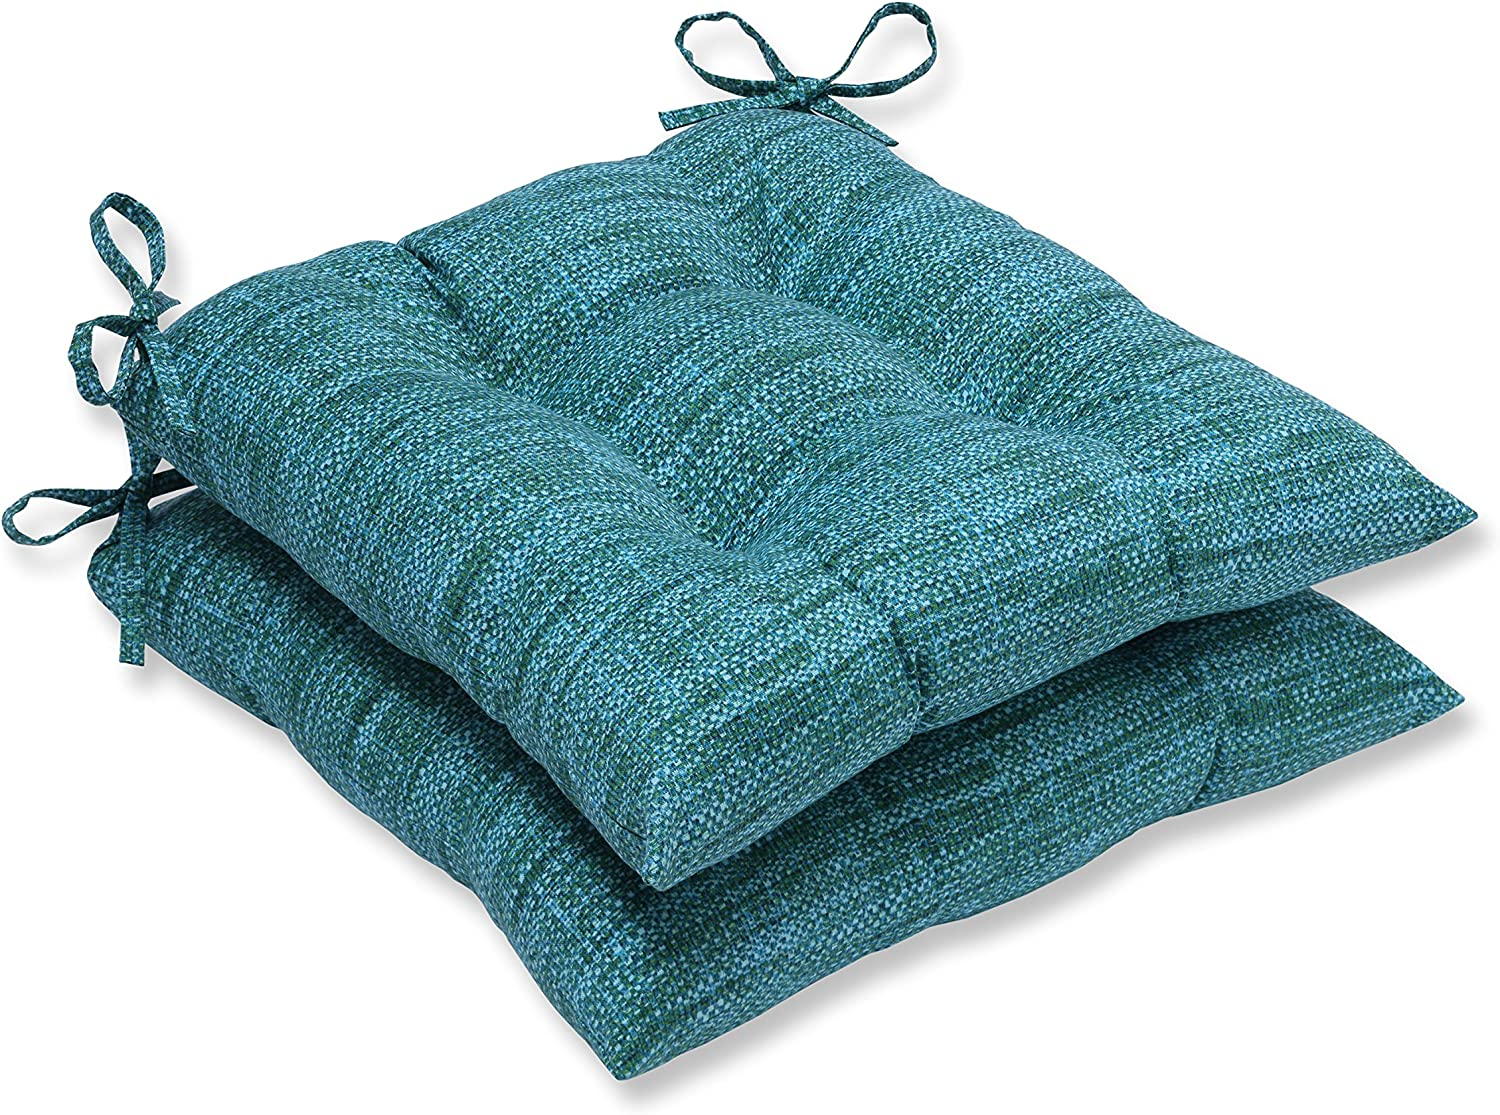 "Pillow Perfect Outdoor/Indoor Remi Lagoon Tufted Seat Cushions (Square Back), 19"" x 18.5"", Blue, 2 Count"